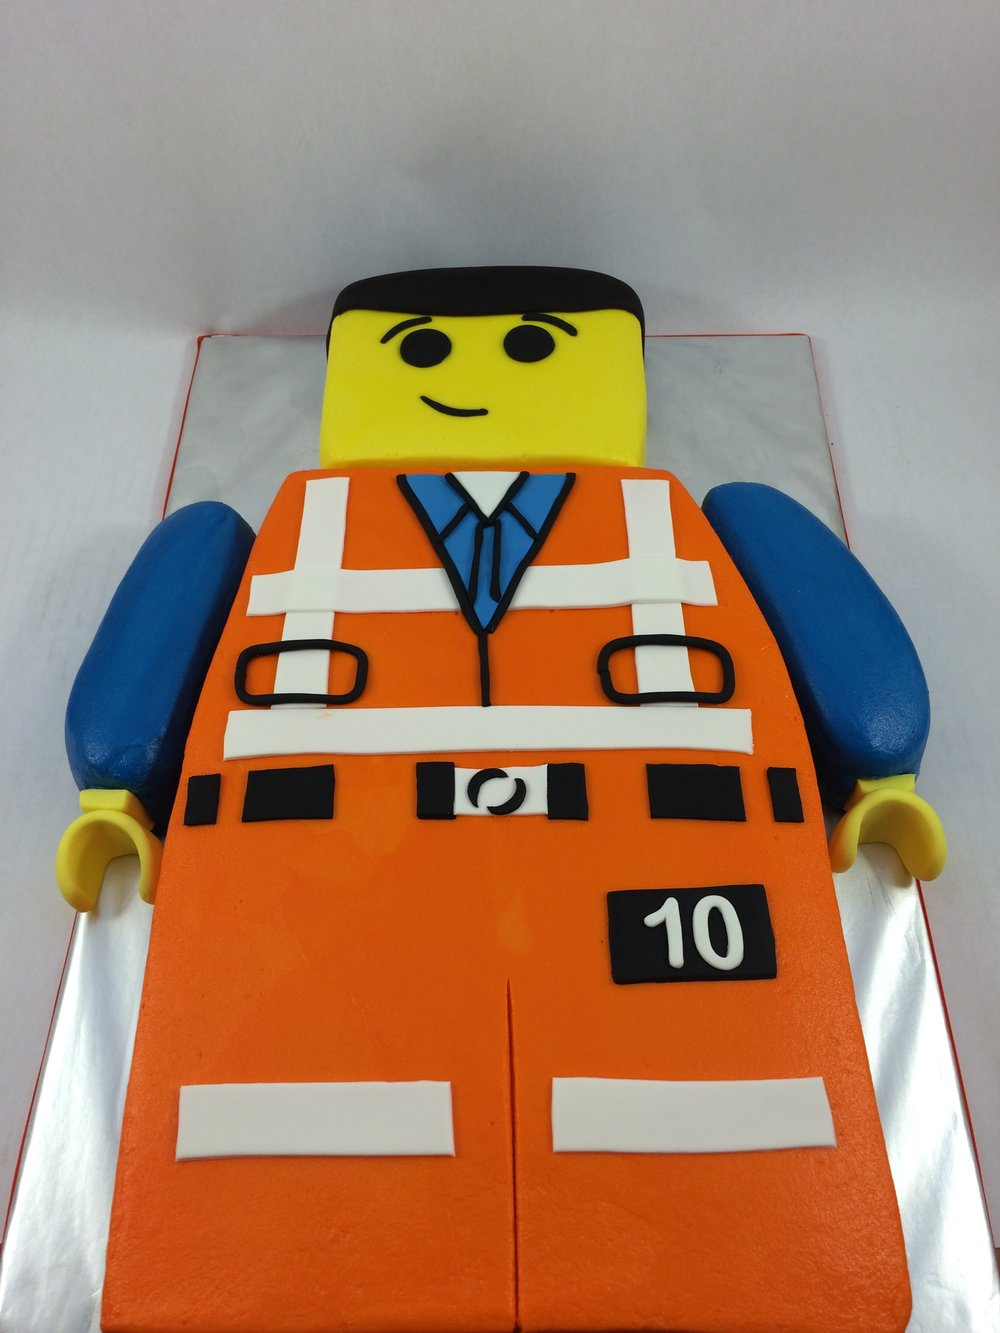 Cake lego mini figure.JPG